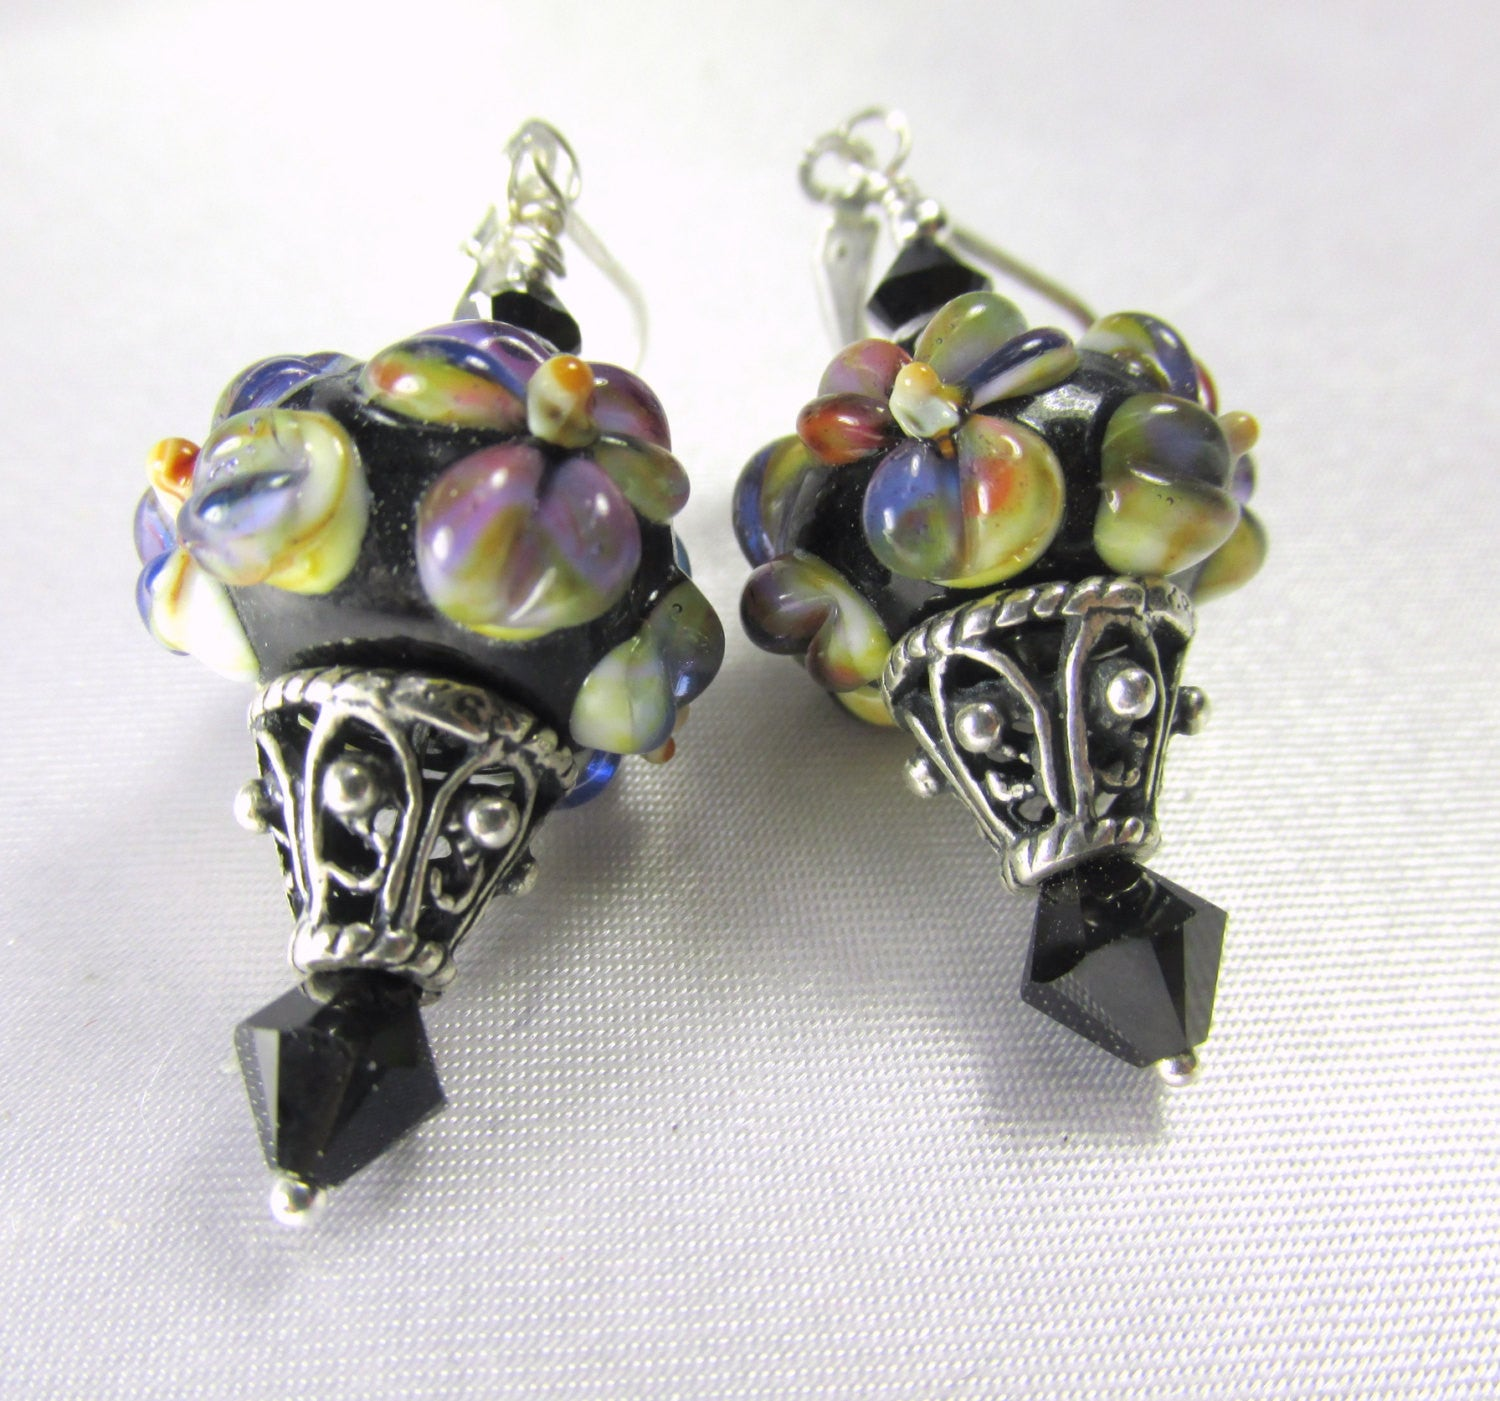 Bali Sterling Silver Lampwork Glass Black, Purple, Green Floral Earrings with Swarovski Crystals - Odyssey Creations